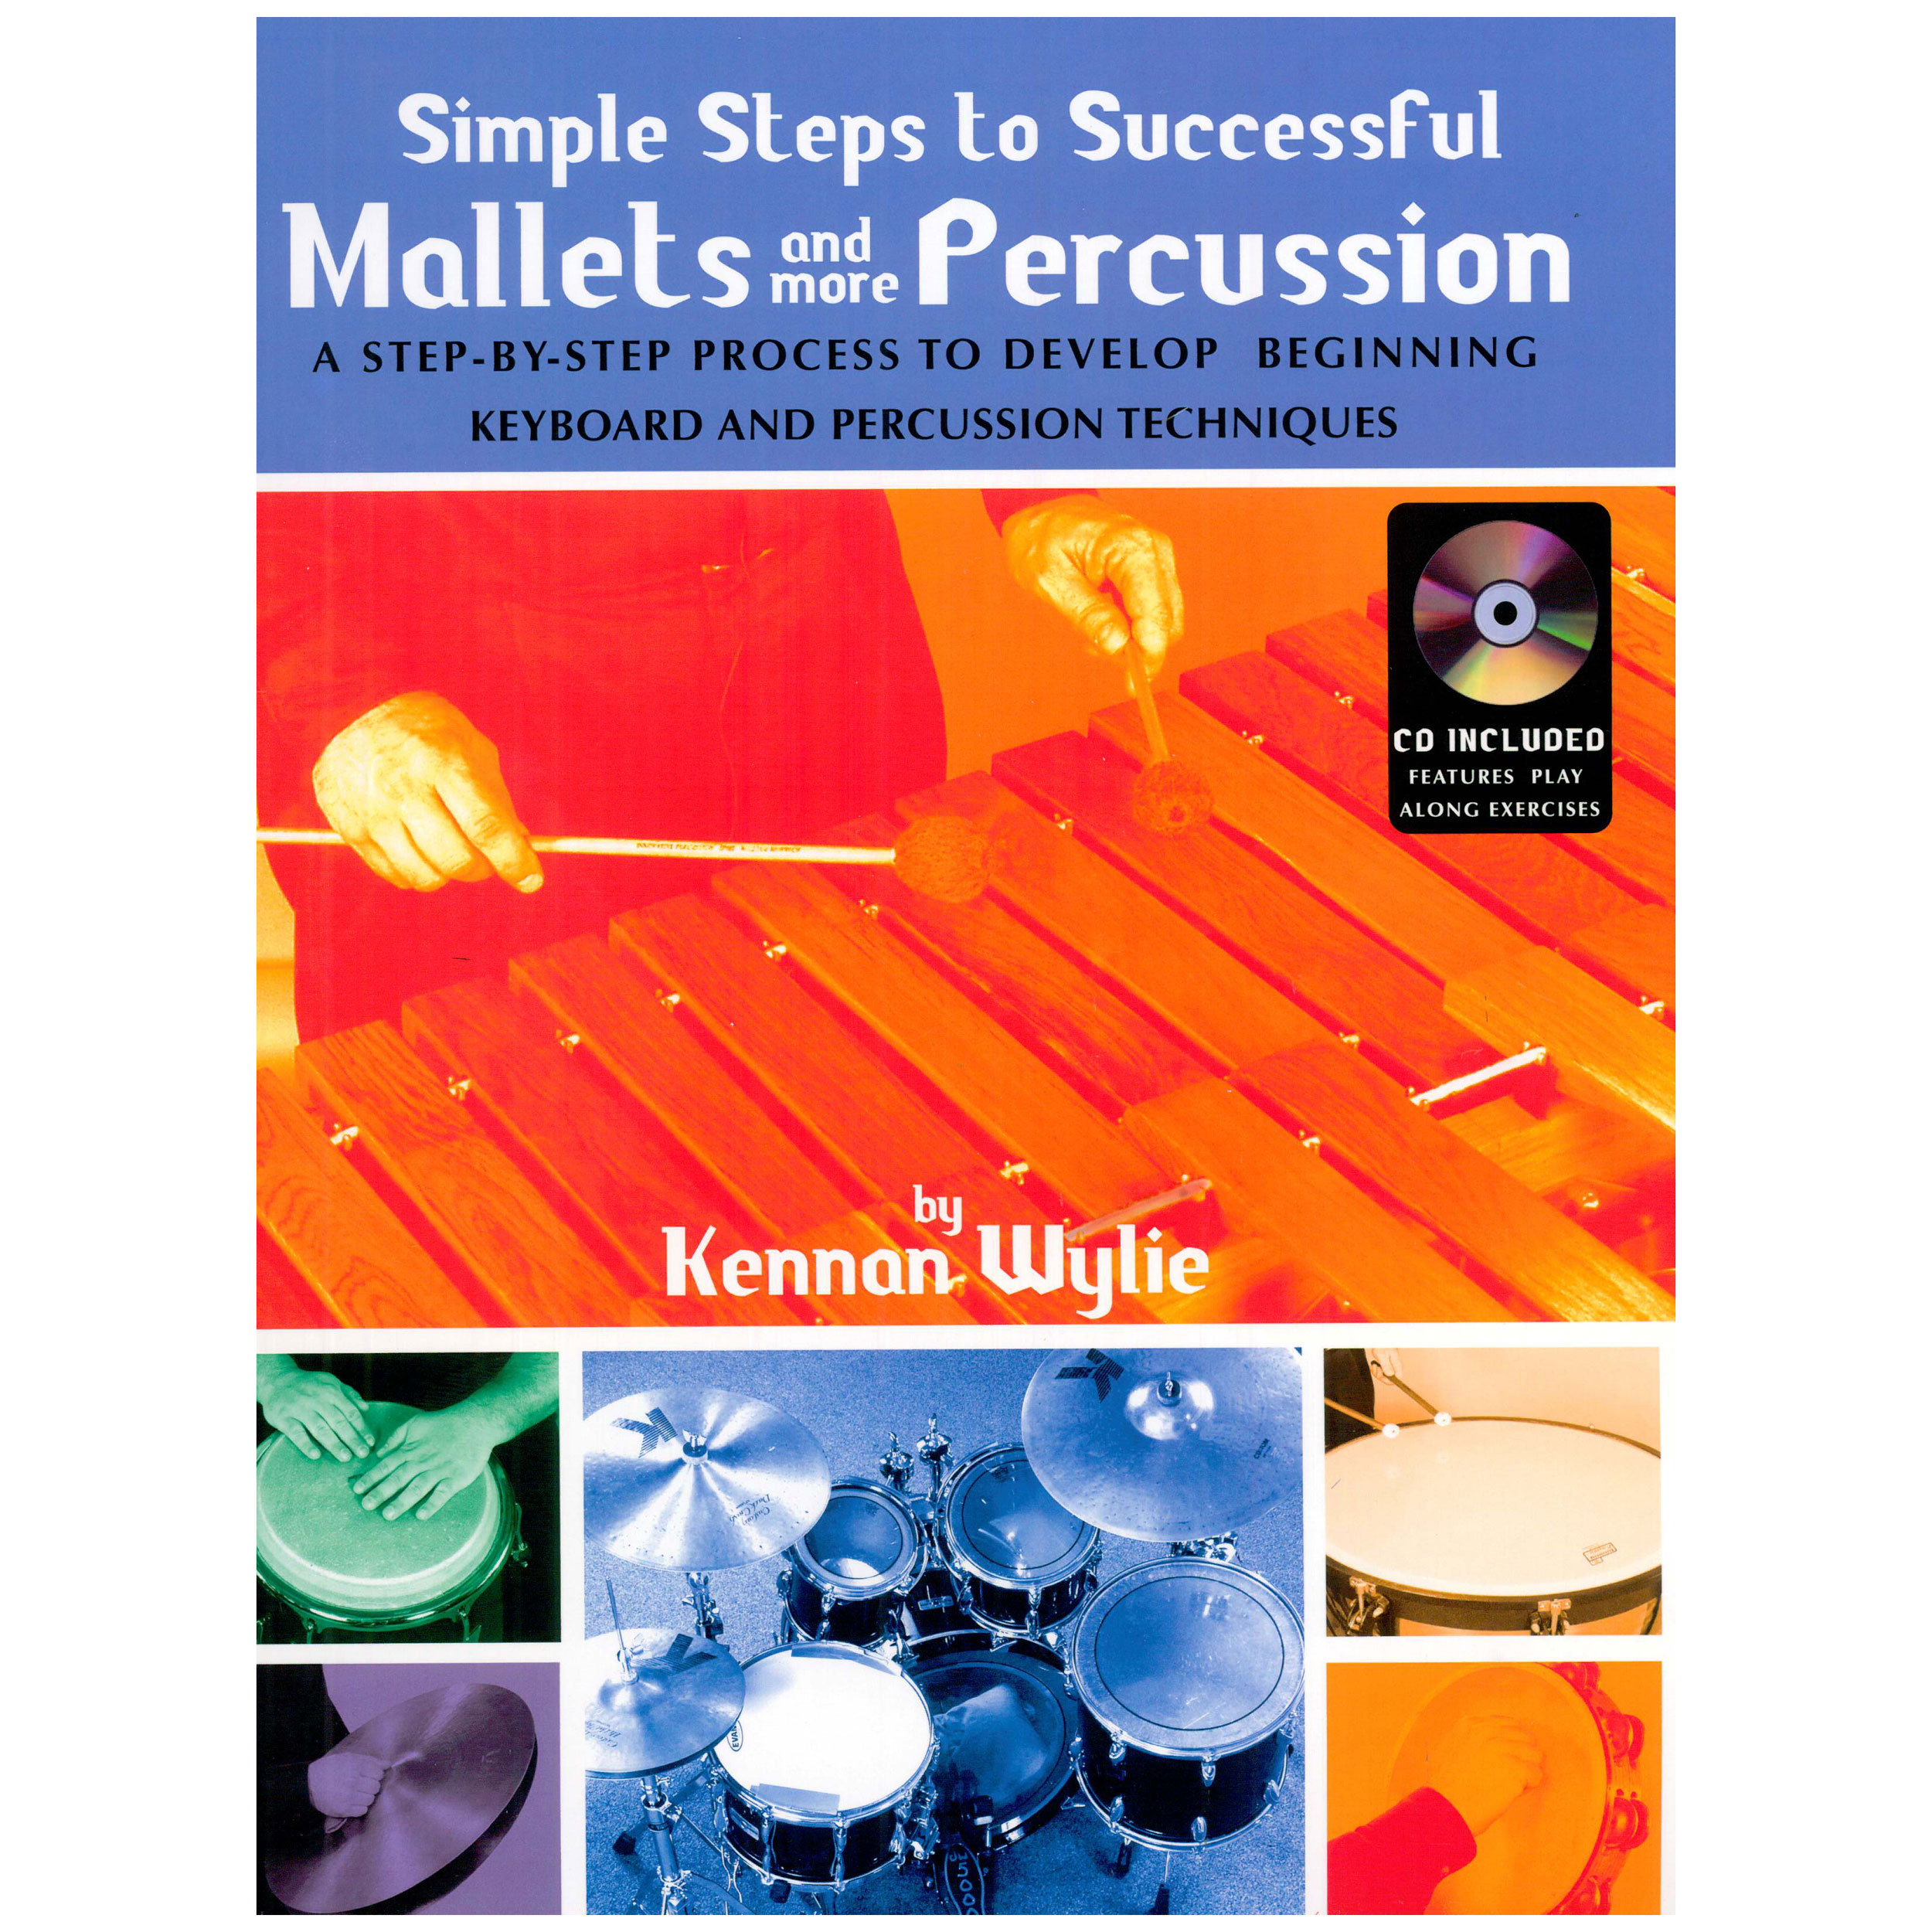 Simple Steps to Successful Mallets and Percussion by Kennan Wylie